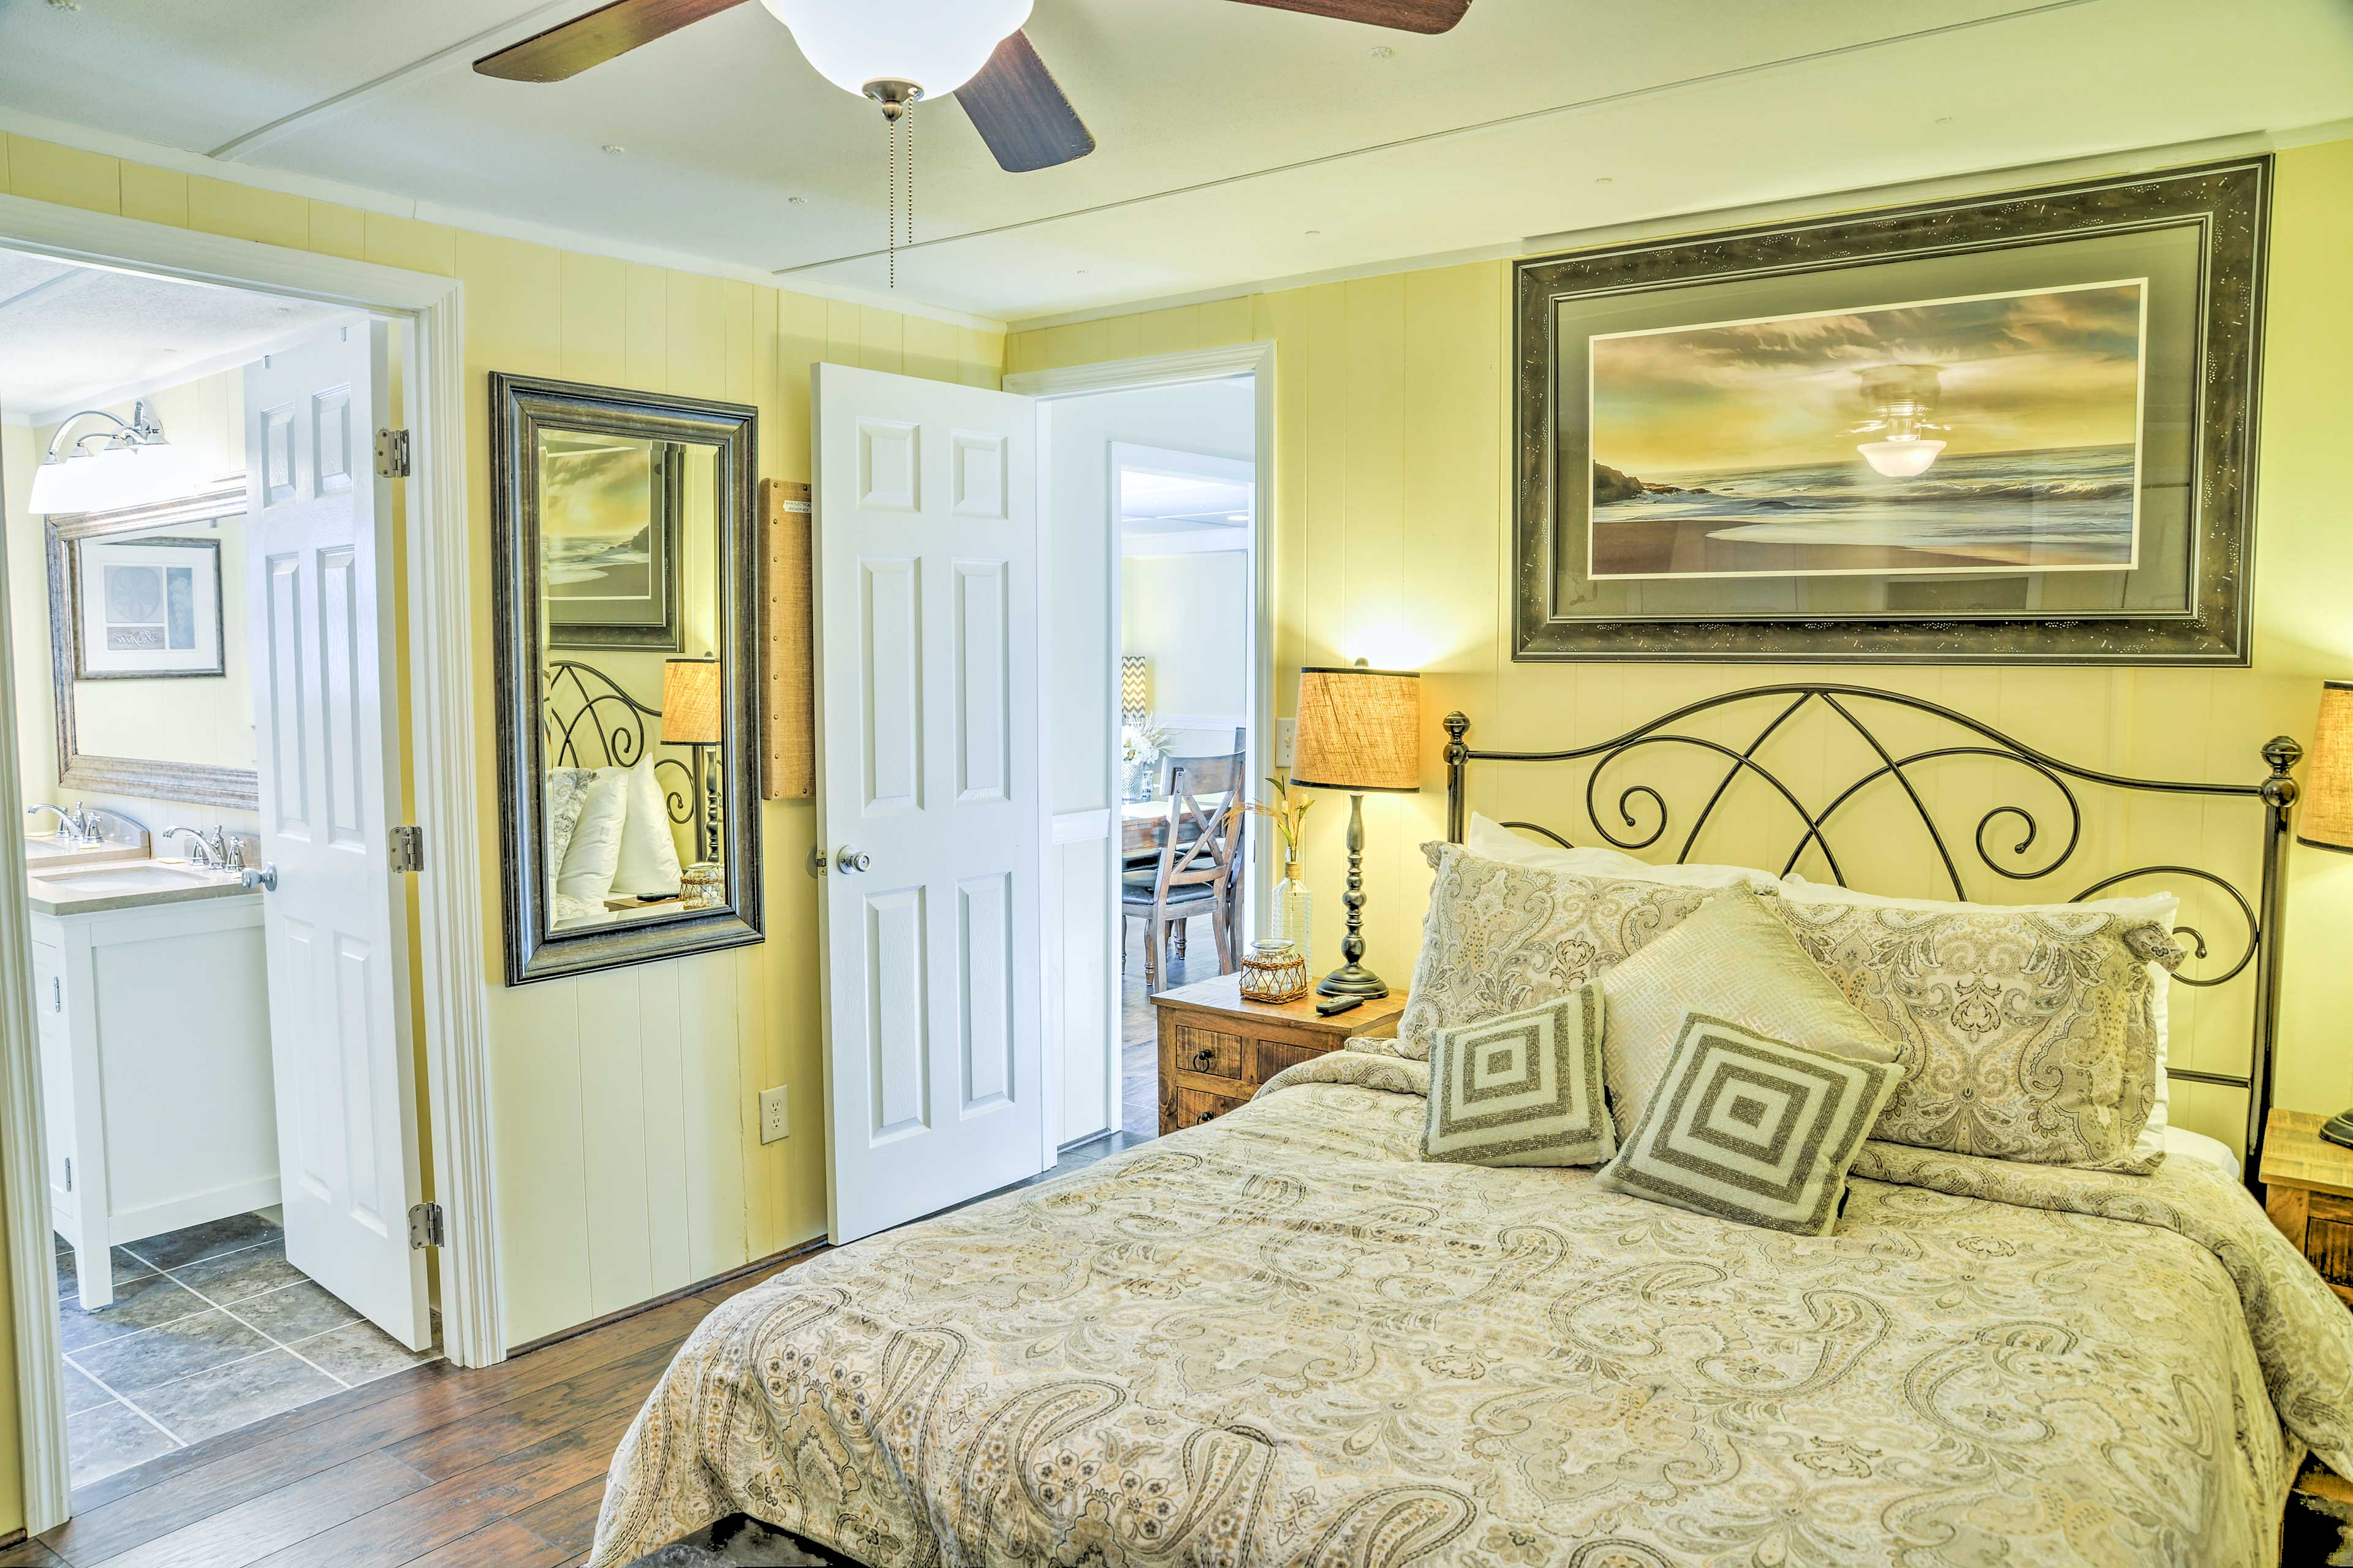 You'll find comfortable queen beds in each of the bedrooms.